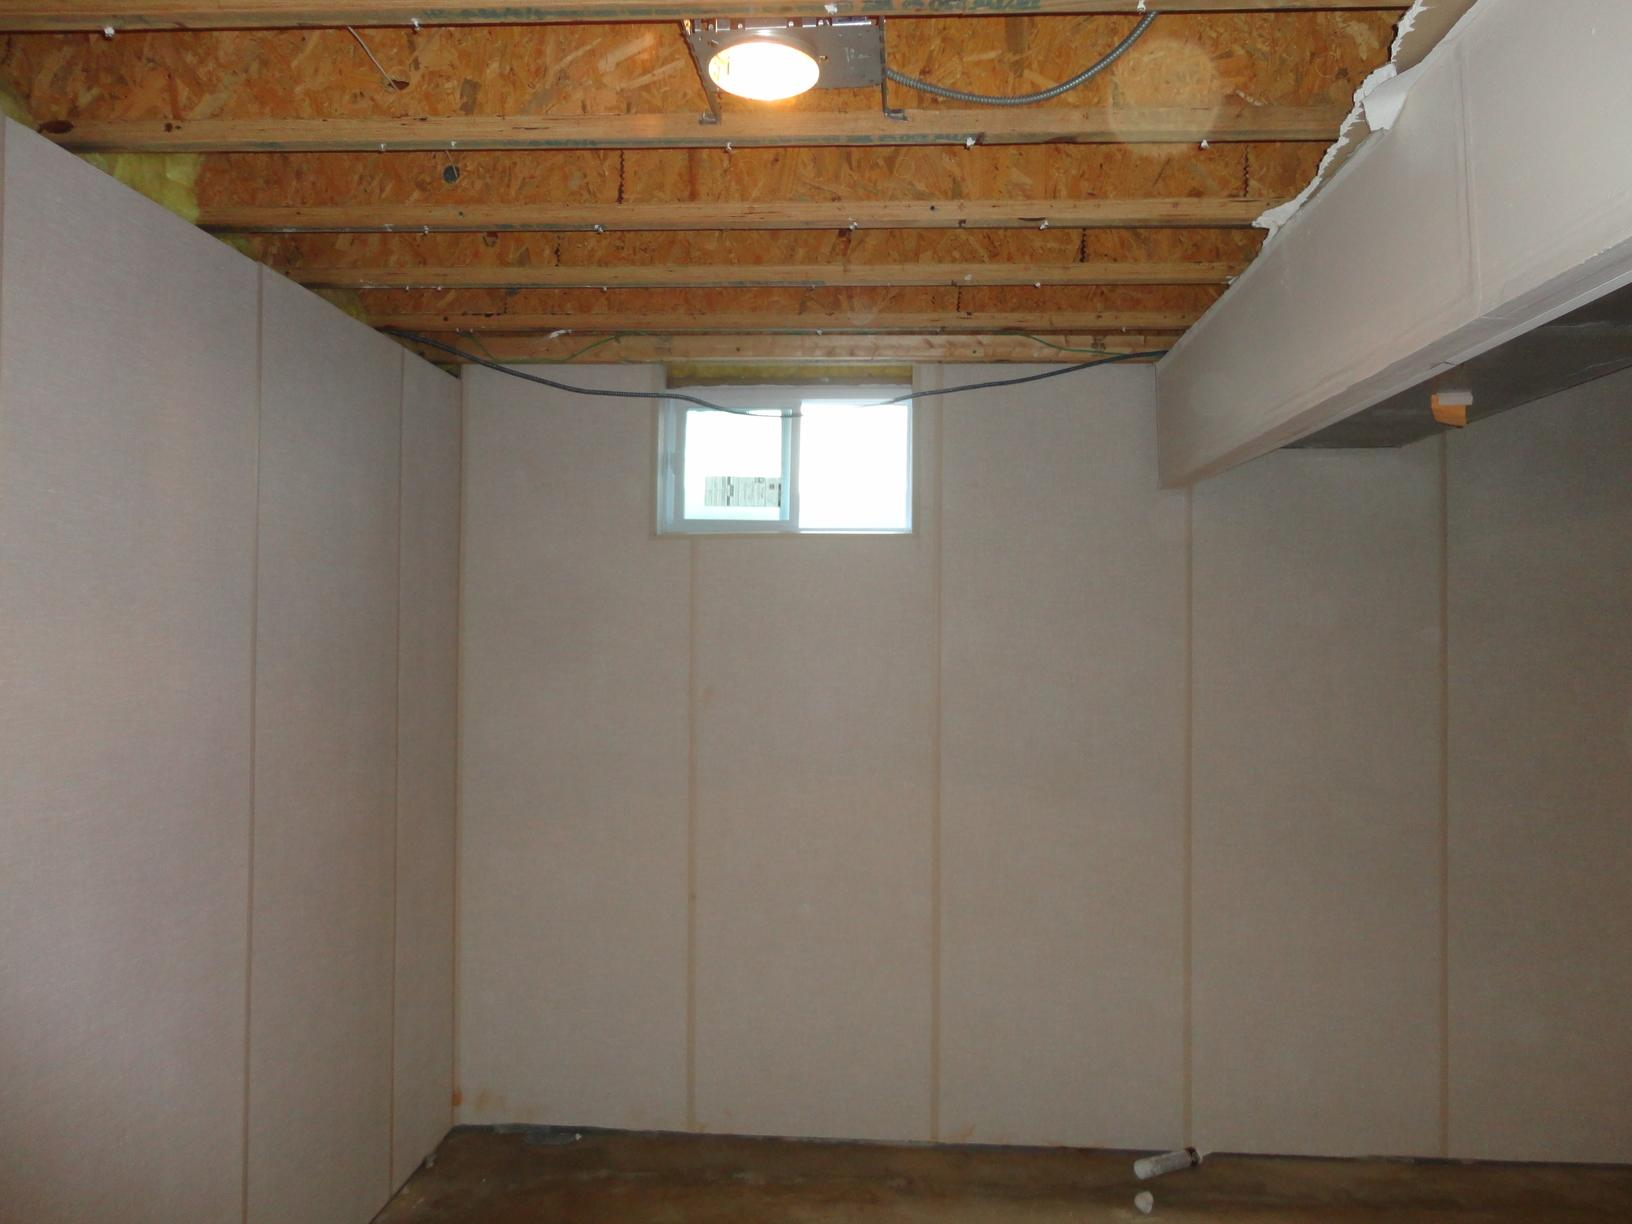 Installation of EverLast Wall and ThermalDry Floor in Finished Basement - After Photo